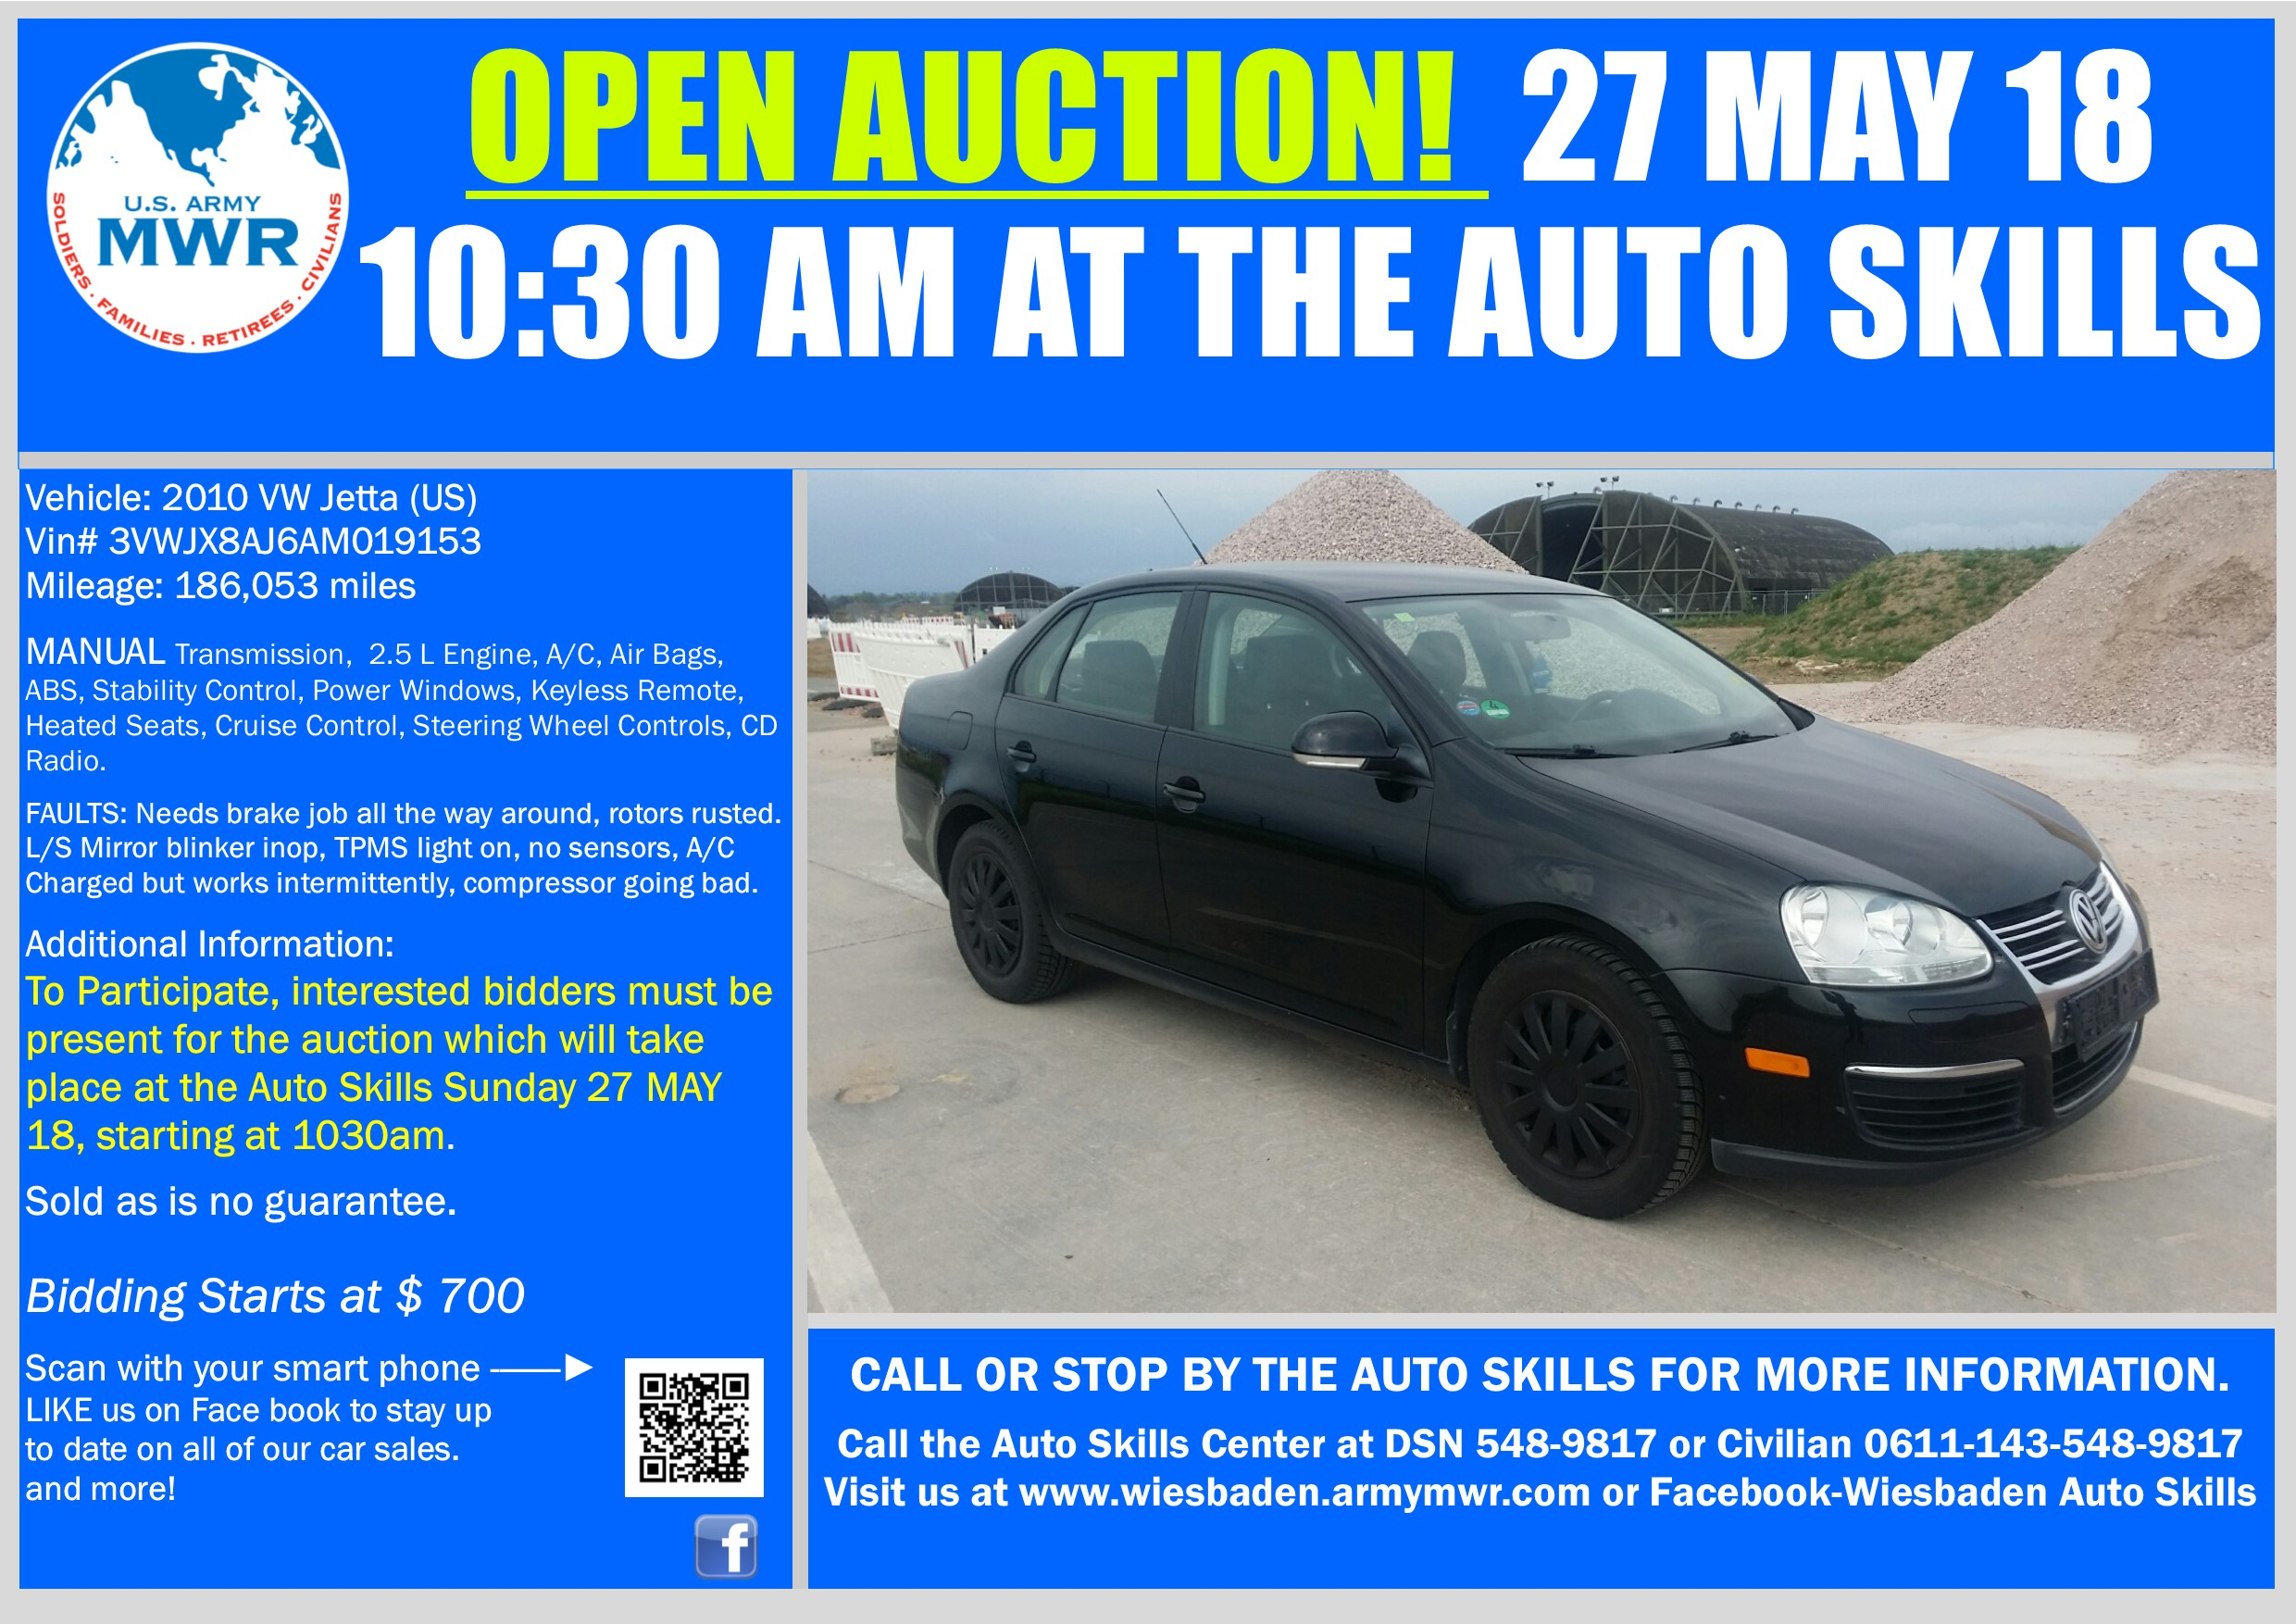 Sale_VW Jetta 27 May 18 Open Auction.jpg